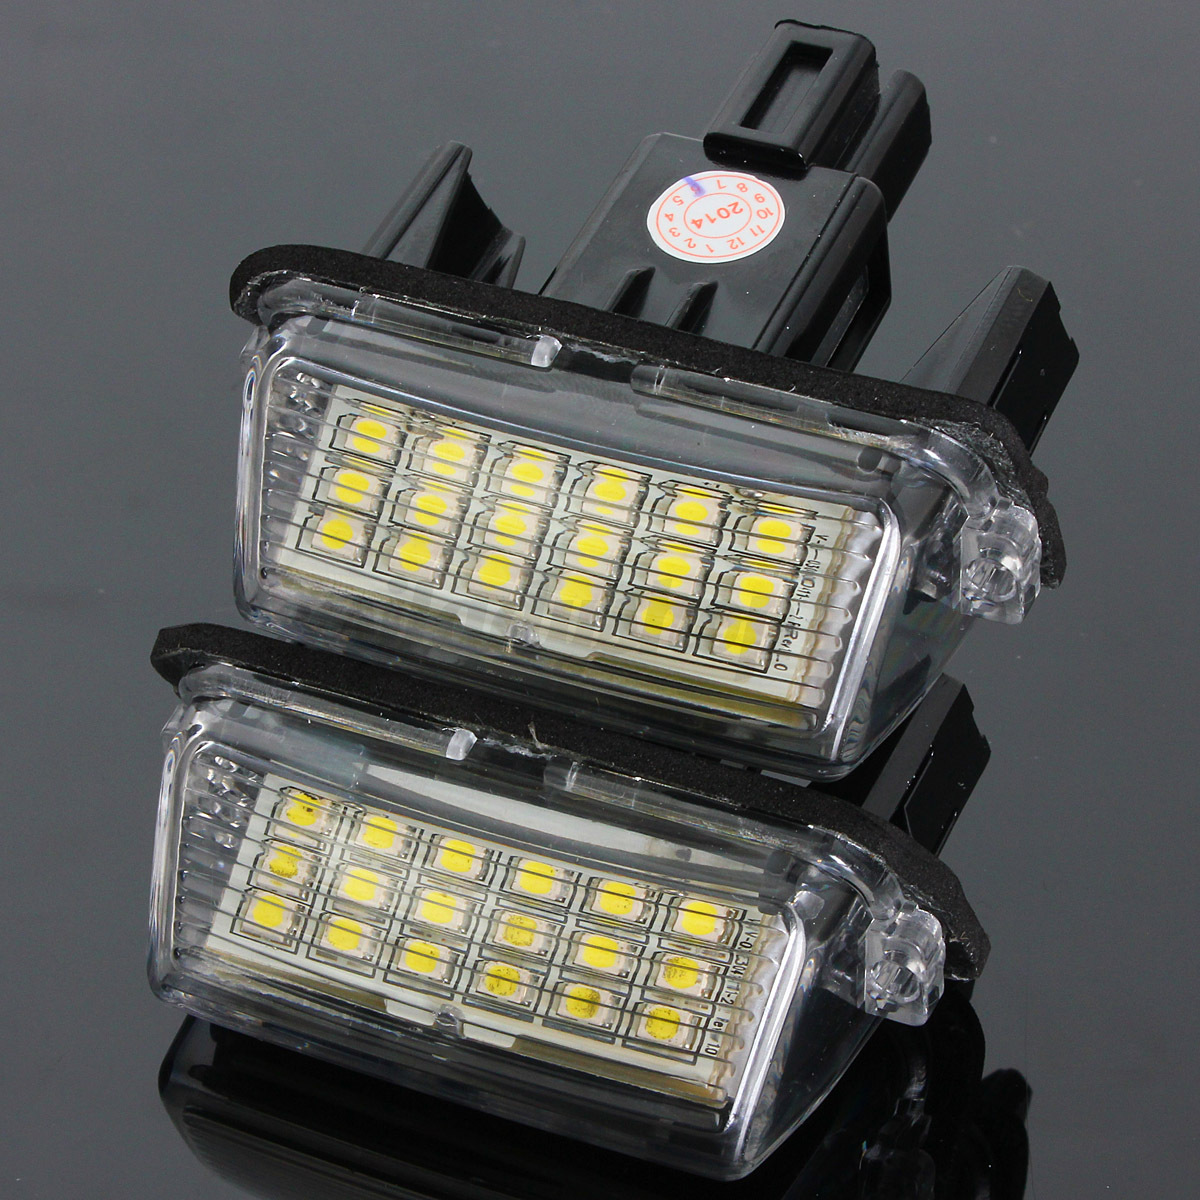 2x Led License Number Plate Light For Toyota Camry Yaris Prius Corolla Fielder 970846407236